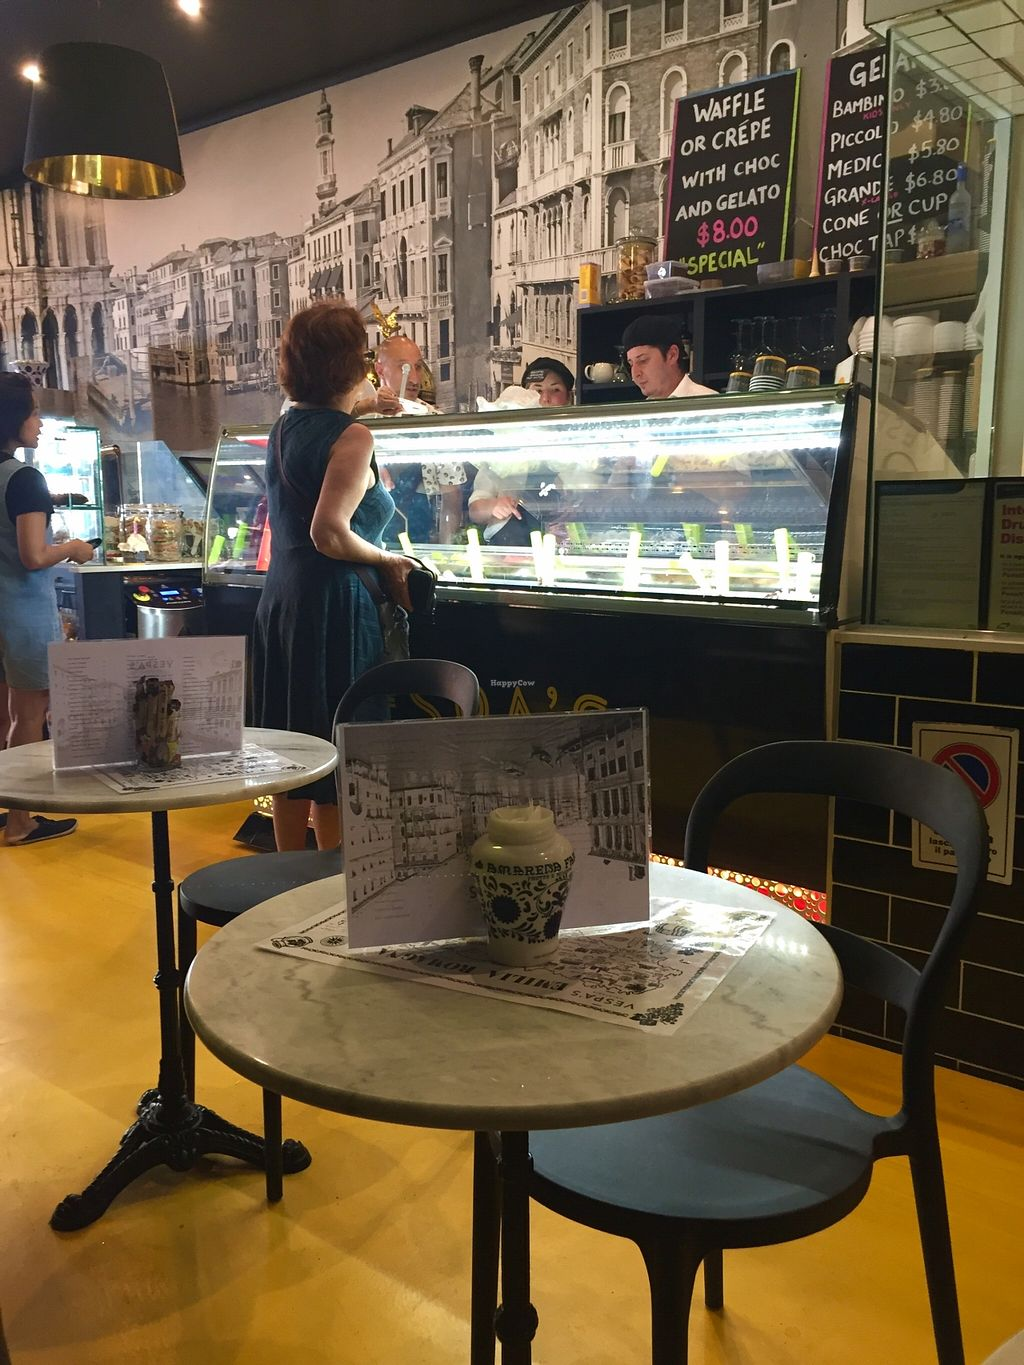 """Photo of Vespa's Gelateria  by <a href=""""/members/profile/karlaess"""">karlaess</a> <br/>Interior  <br/> December 16, 2015  - <a href='/contact/abuse/image/66827/128773'>Report</a>"""